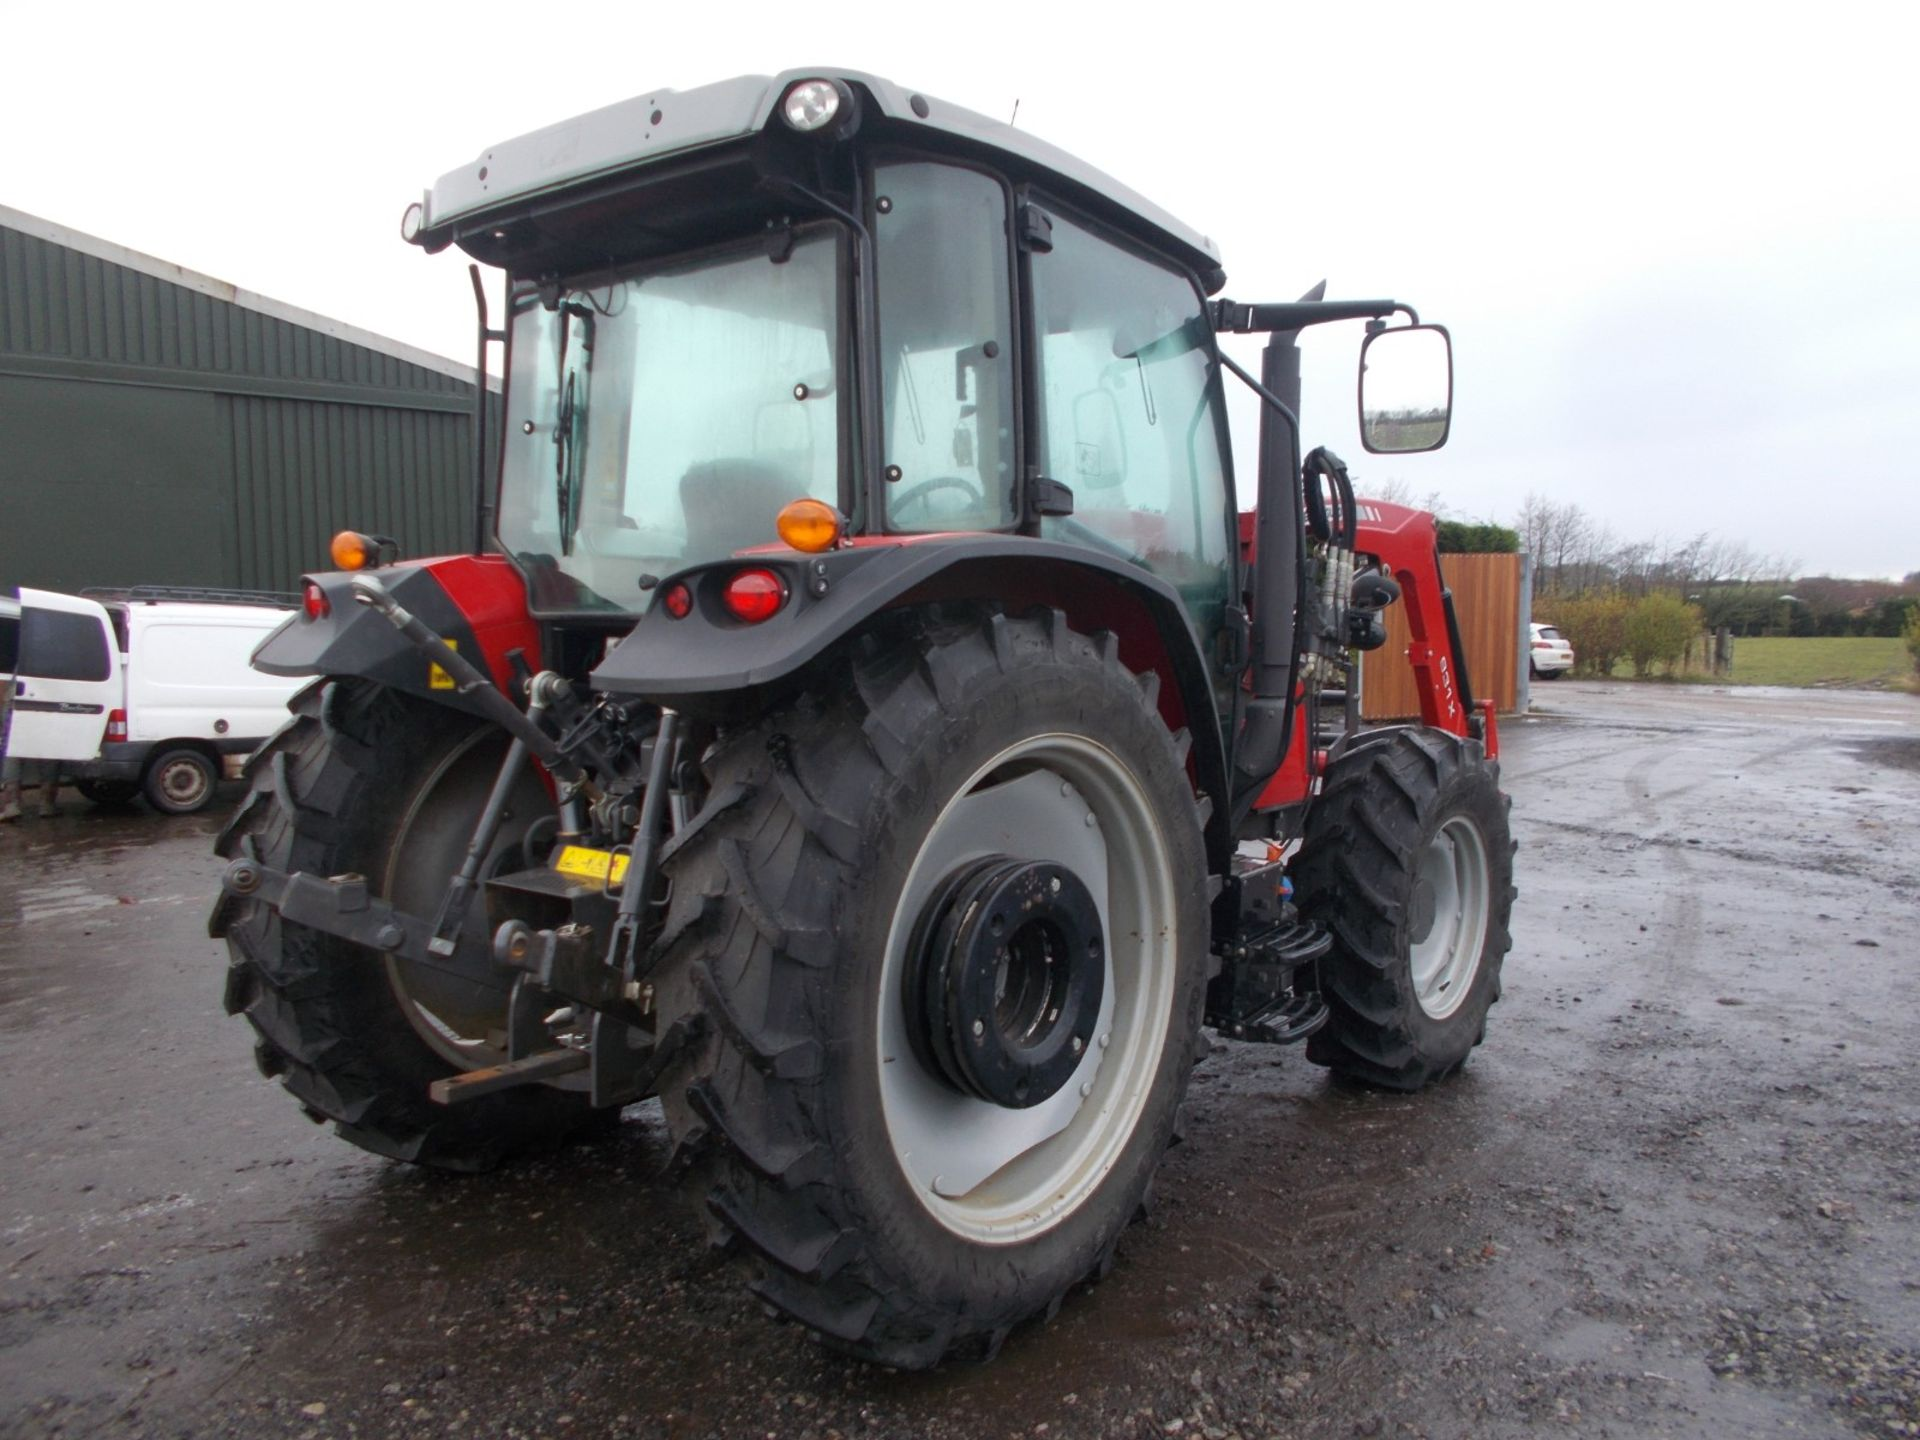 2018 MASSEY FERGUSON 4710 4WD TRACTOR WITH LOADER, AGCO 3.3 LITRE 3CYL TURBO DIESEL *PLUS VAT* - Image 7 of 21